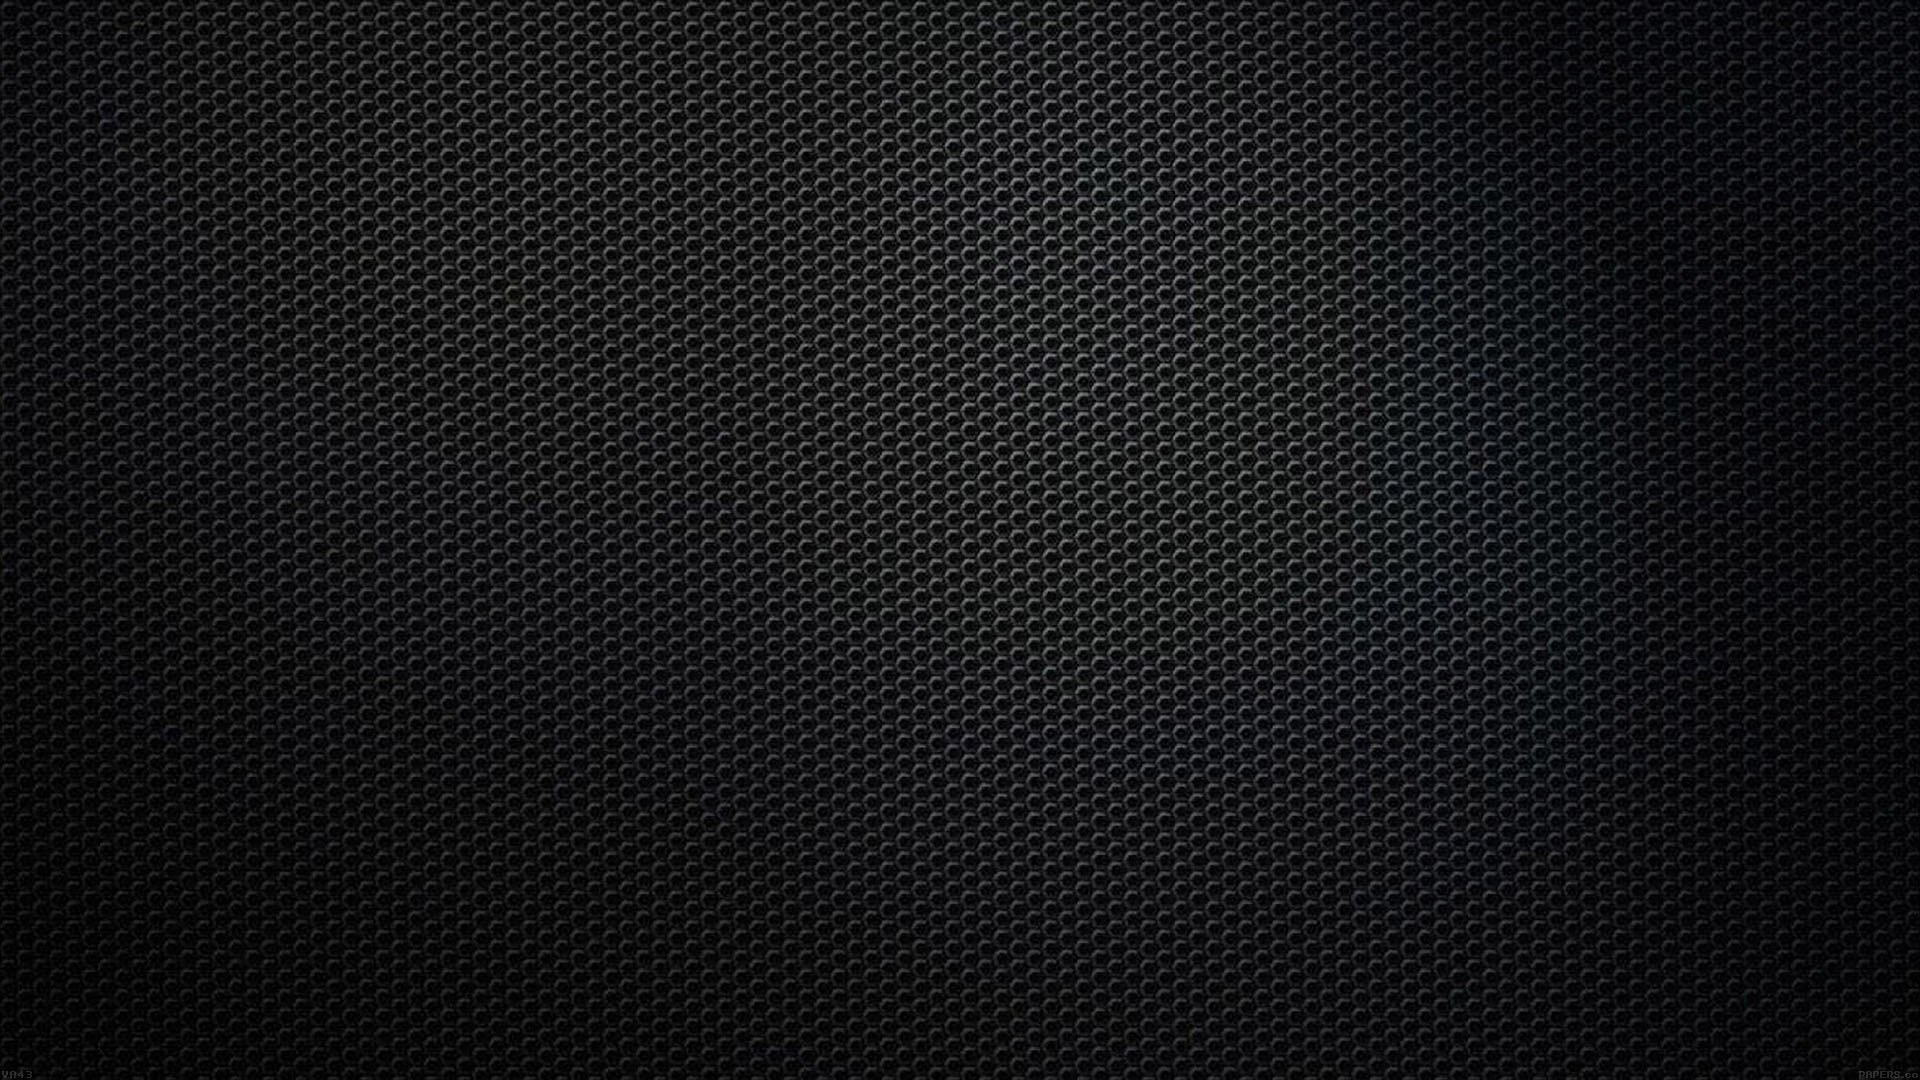 Google Wallpaper Images Fall Va43 Carbon Pattern Black Pattern Papers Co